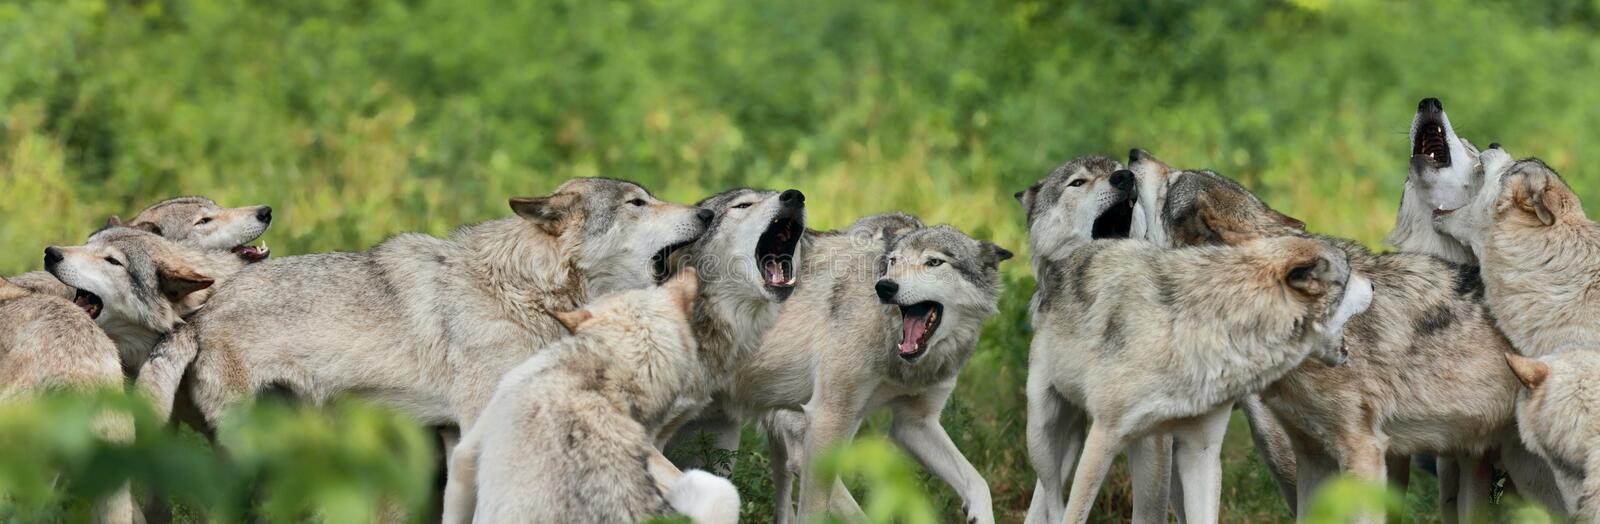 Pack of gray wolf royalty free stock photos